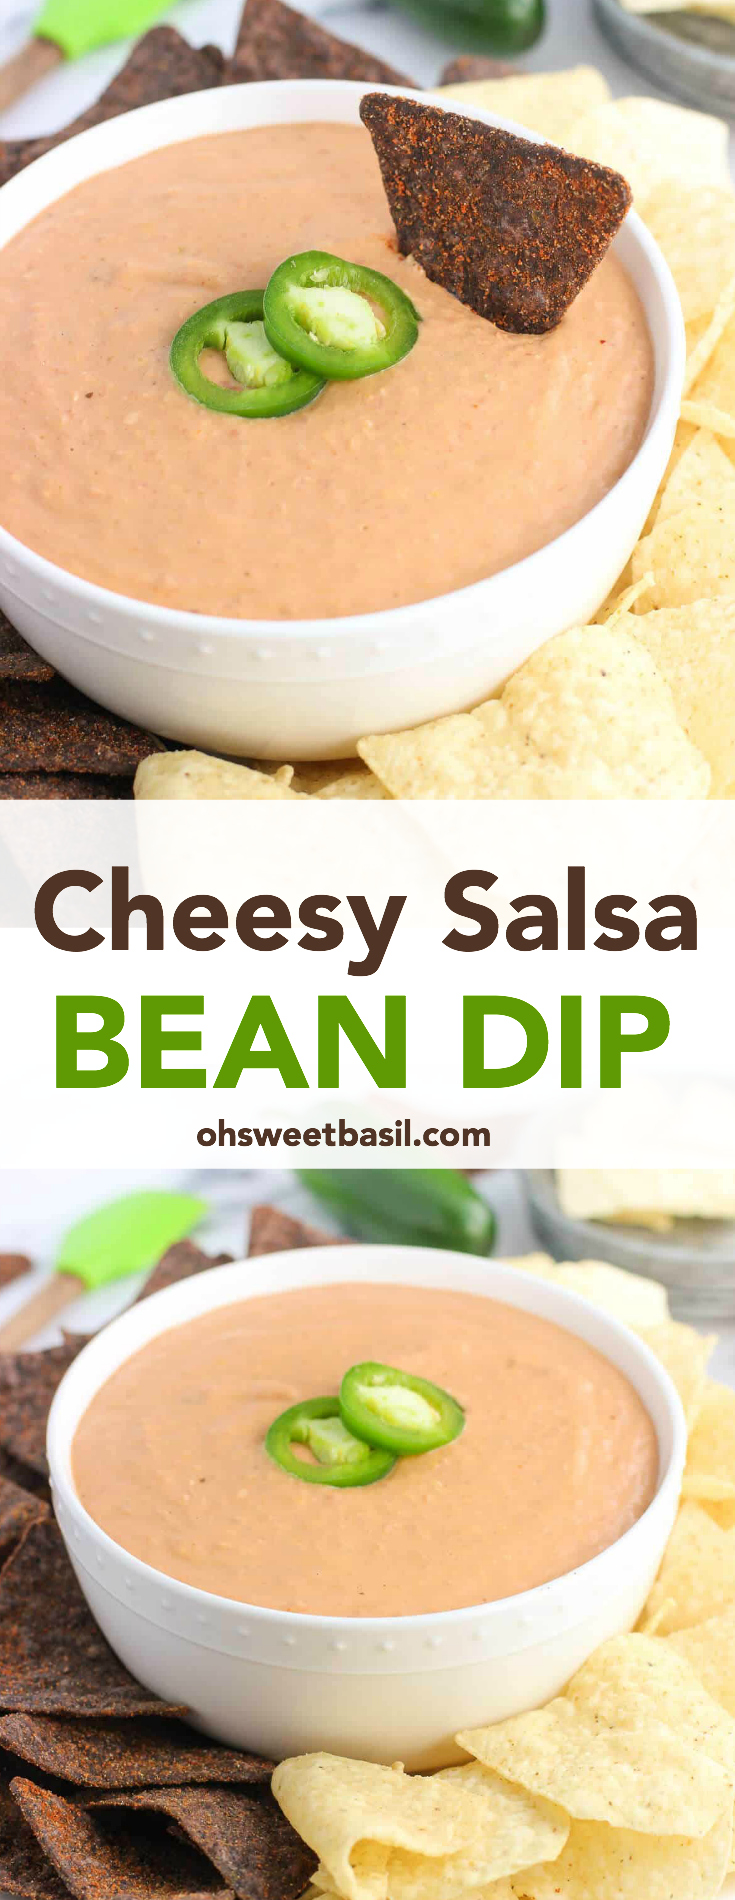 A bowl of delicious cheesy salsa bean dip with chips